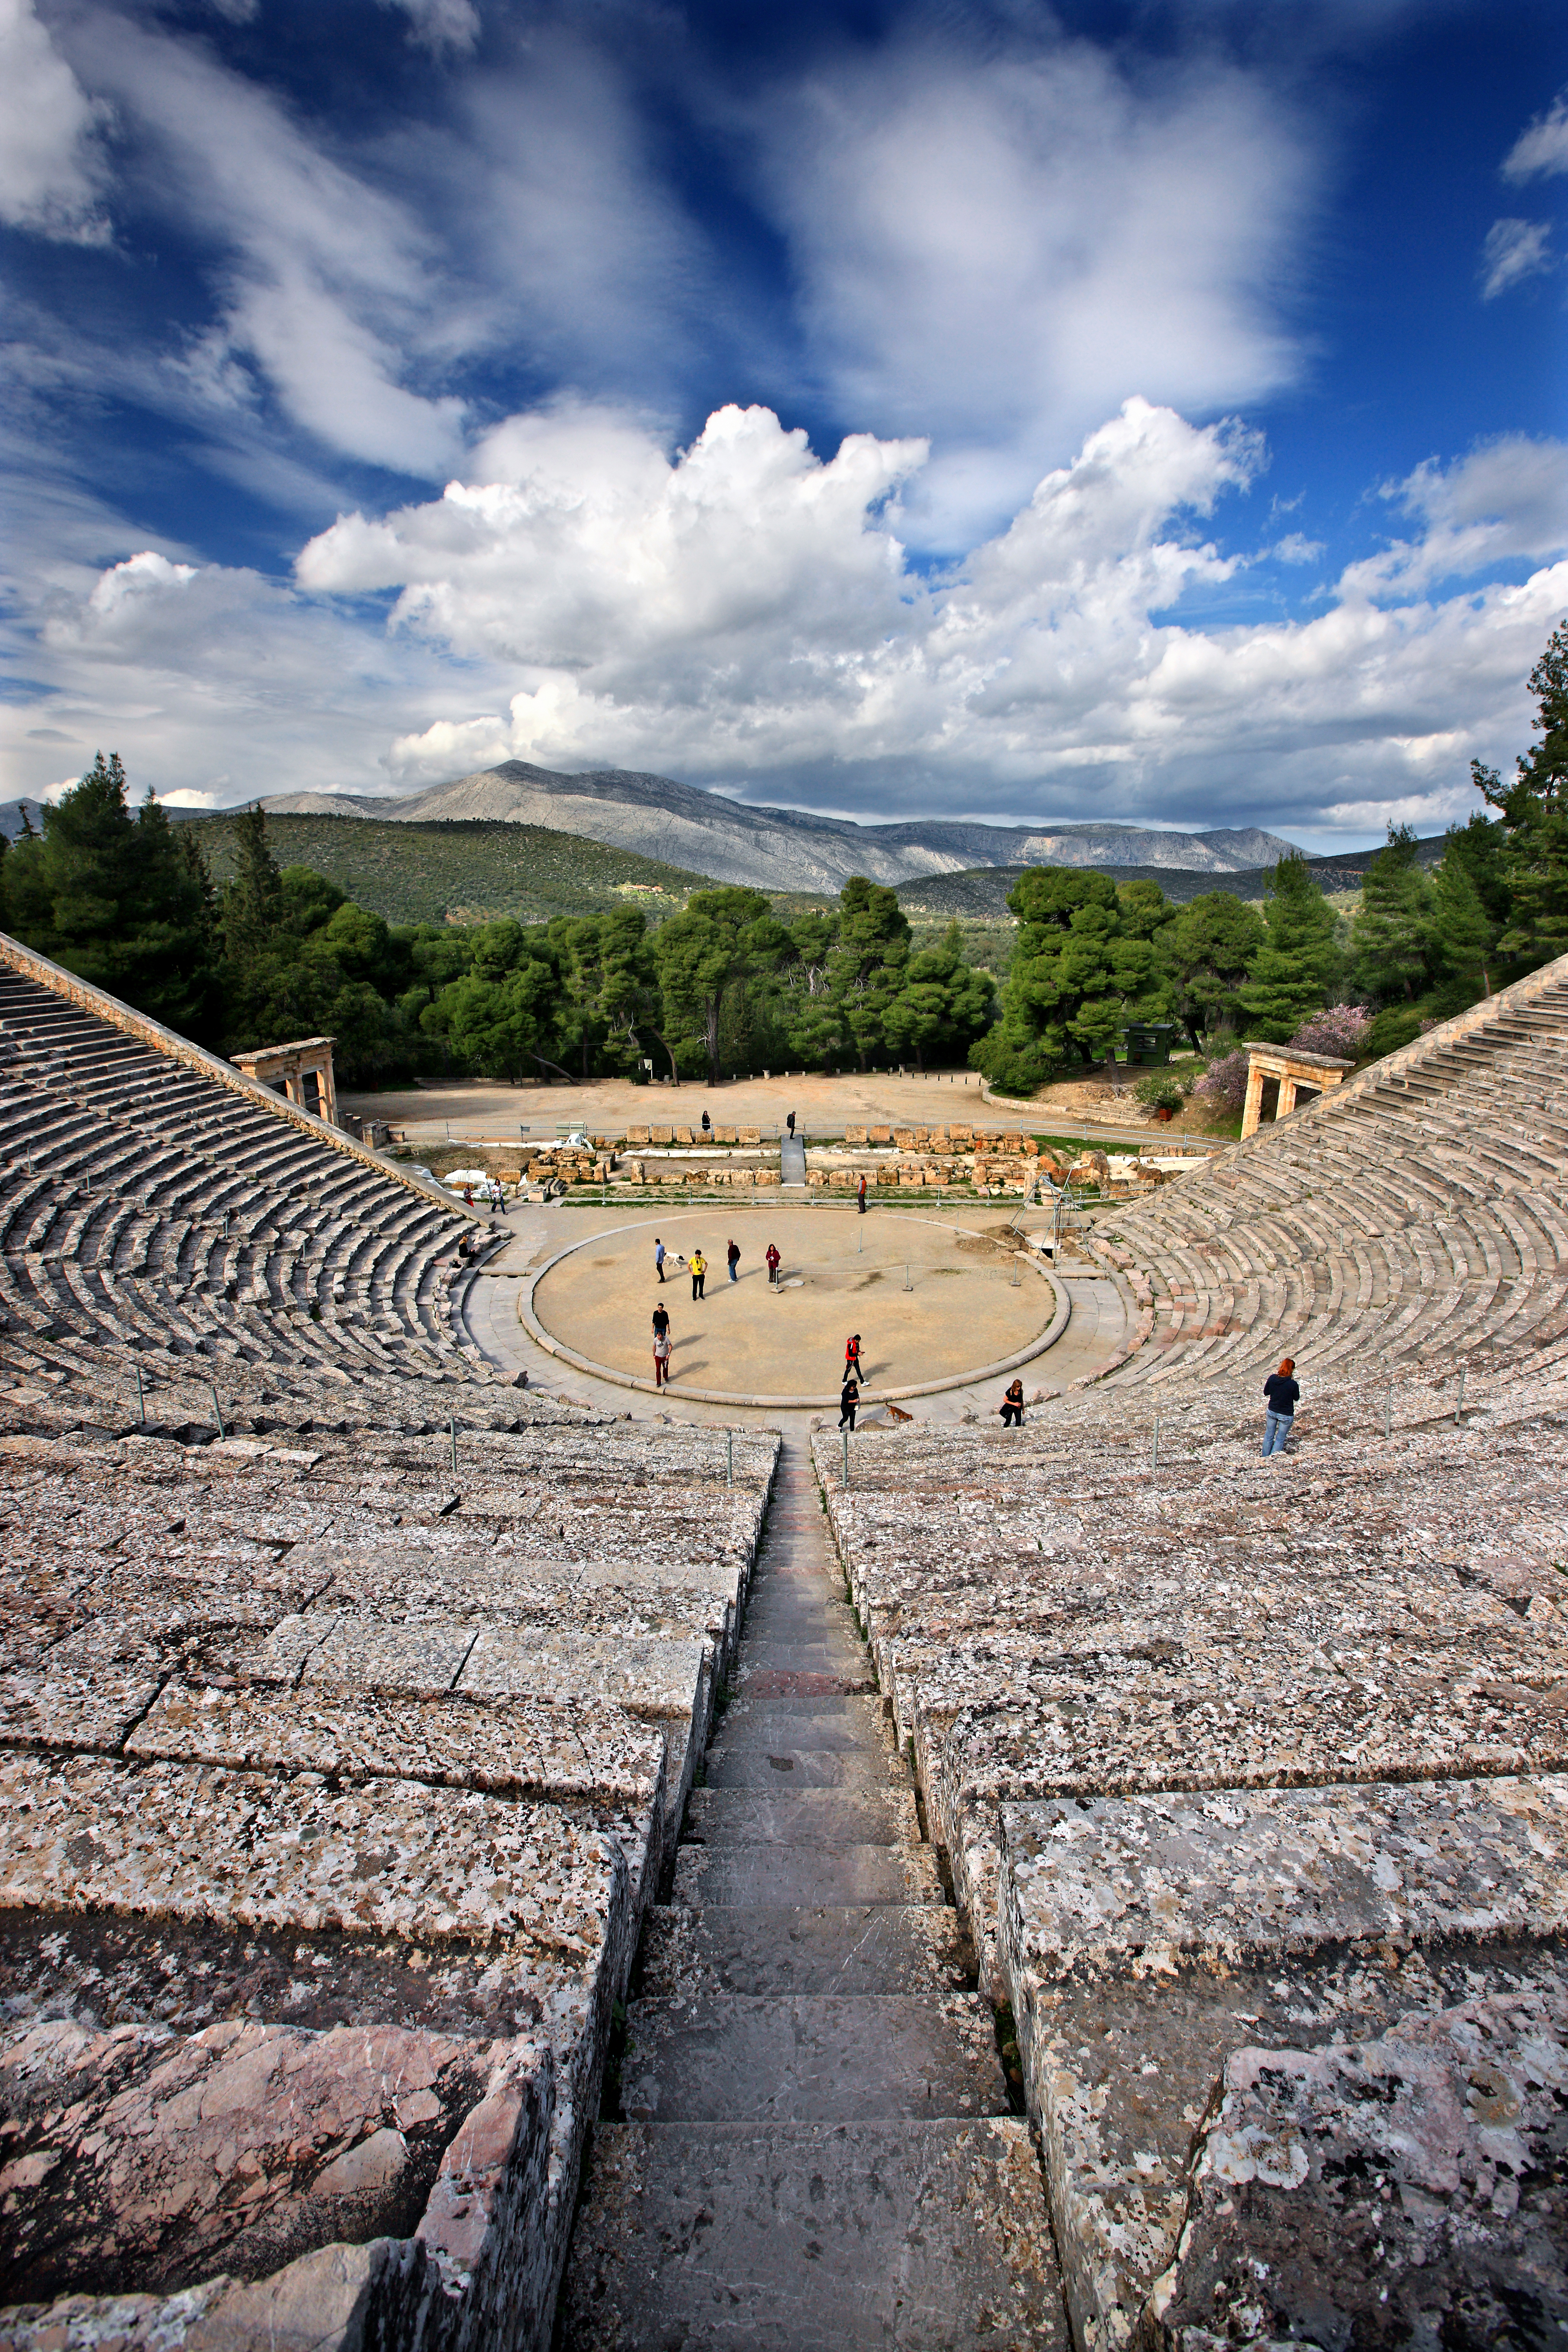 Epidauros is often considered the cradle of modern medicine. It was originally a sanctuary dedicated to the god of medicine, Asclepios. HERACLES KRITIKOS / Shutterstock